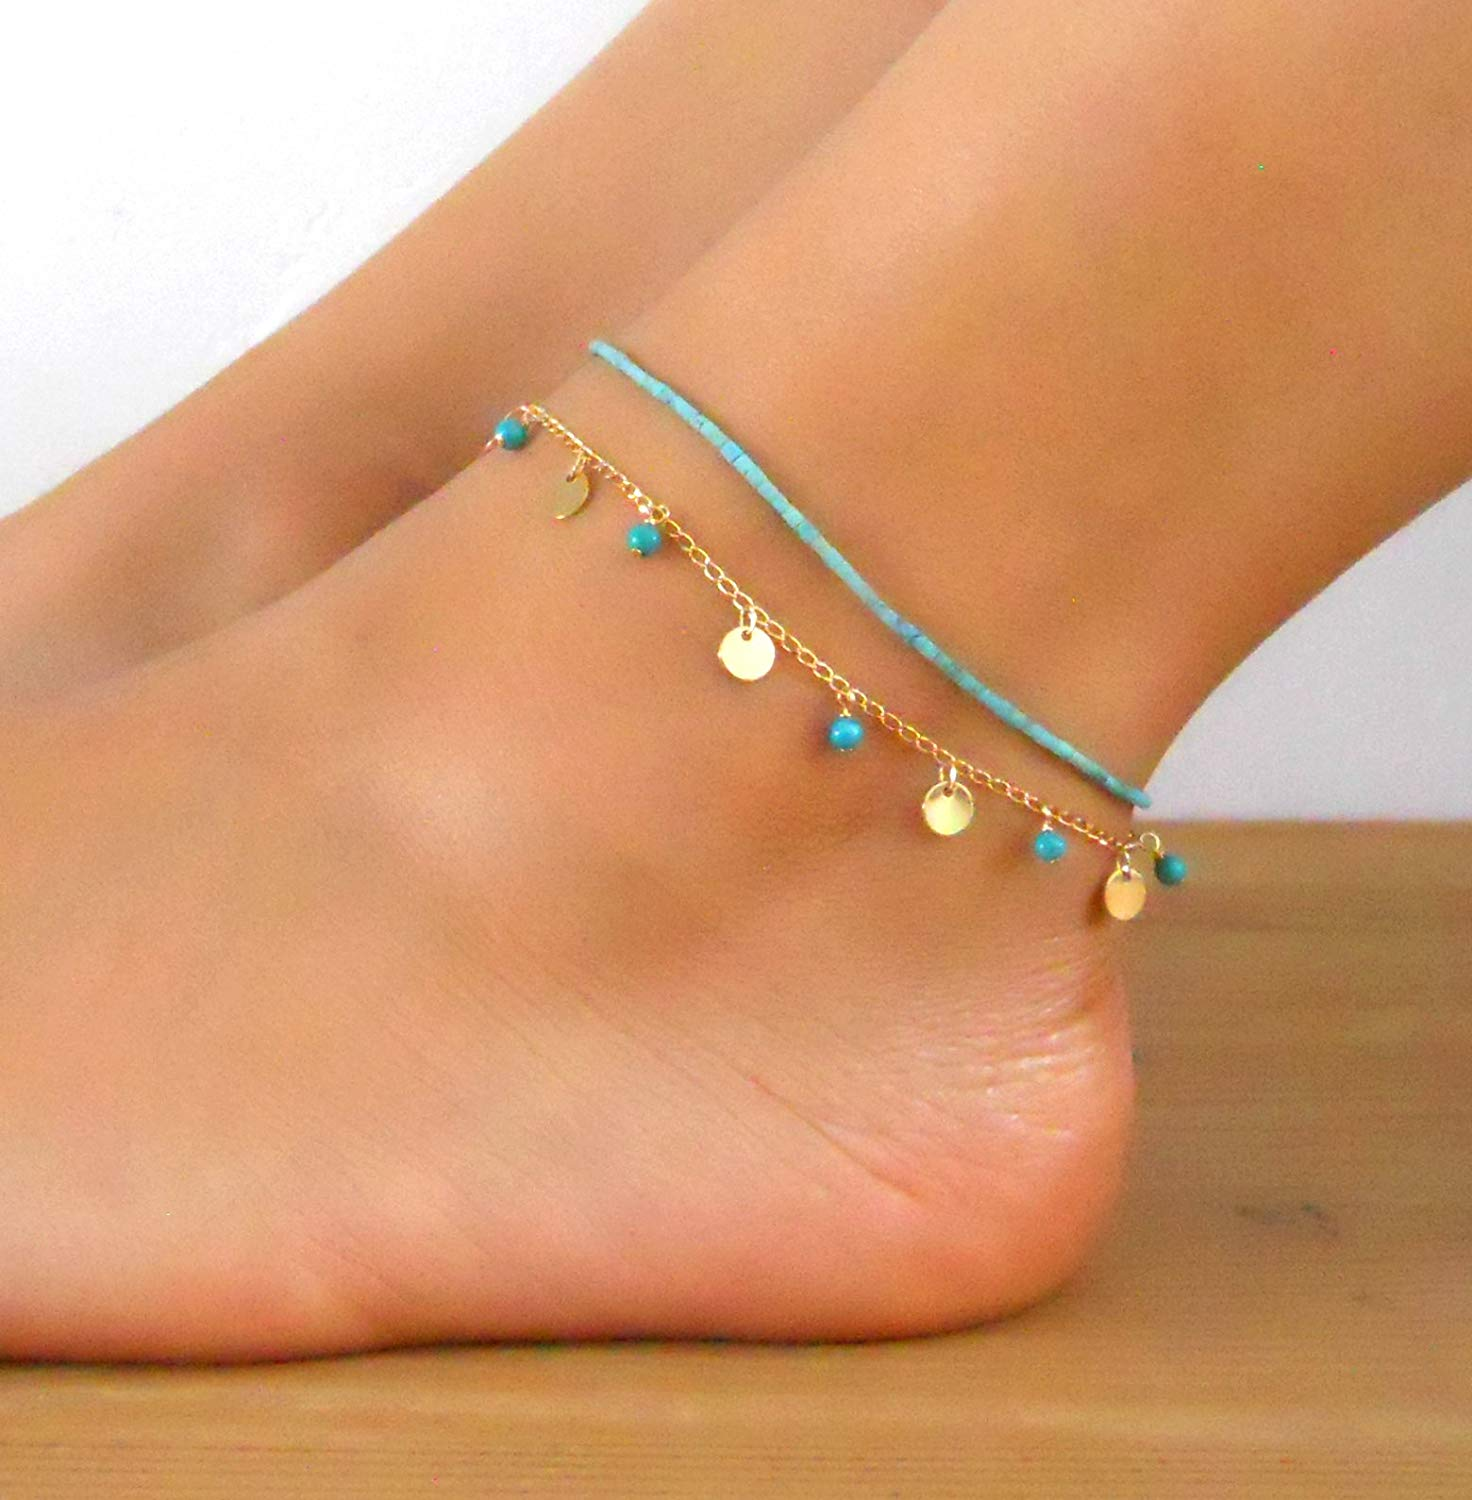 Handmade Designer Multistandard Double Layered Set Of 2 Anklets Turquoise Beads Anklet And Gold Coin Anklet